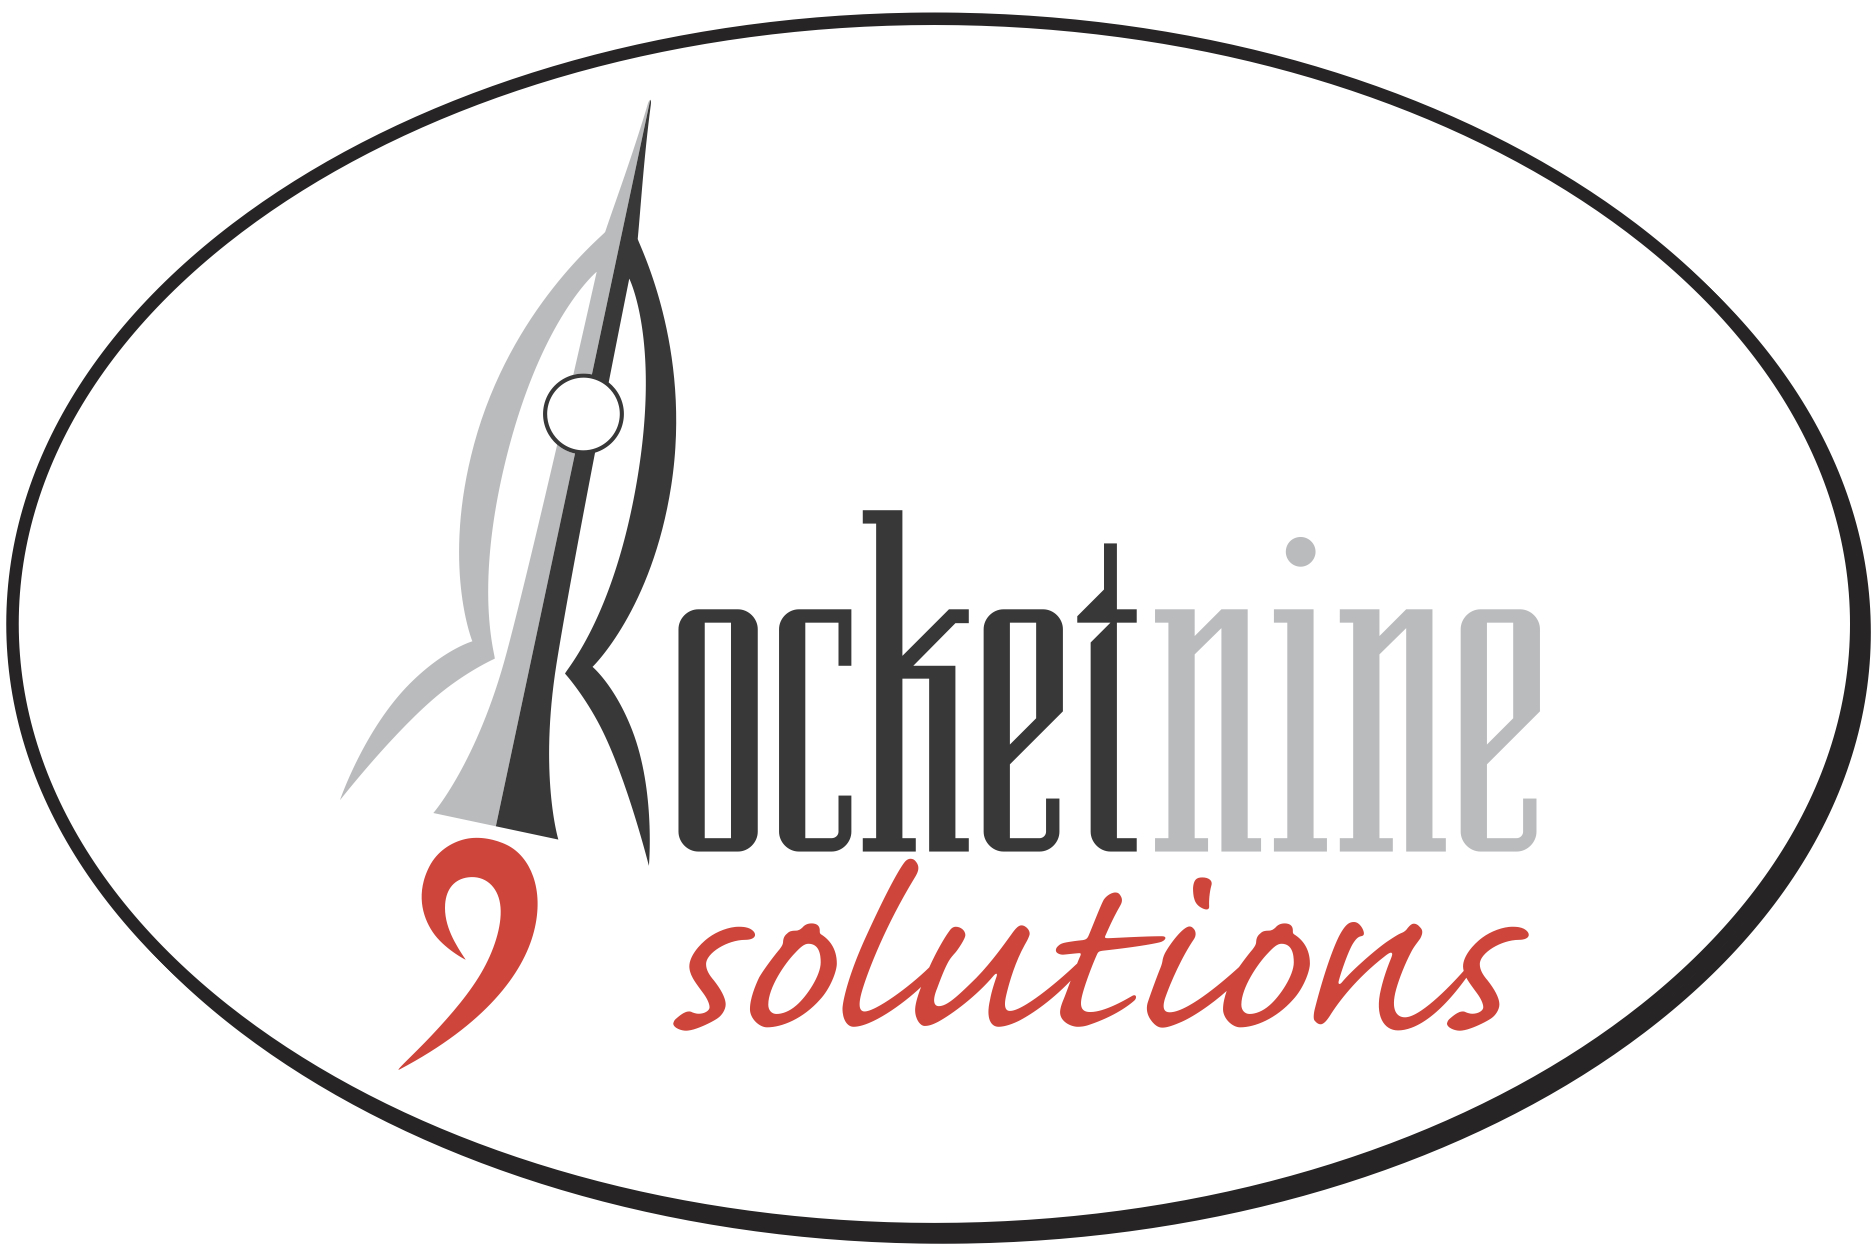 Rocket Nine Solutions - Rocket Nine Solutions is an Agile training, coaching and consulting company led by Scott Dunn, CEC, CST. Scott has lead agile adoptions at many companies. Scott is also a SAFe Program Consultant and certified in Large Scale Scrum (LeSS) and Agile Leadership (CAL) as well. Rocket Nine Solutions is focused on serving the innovative product development market in Southern California. Rocket Nine coaches have provided training and coaching in Scrum and agile for teams in the entertainment, interactive, new media, finance and healthcare industries in Los Angeles, Orange County, Inland Empire, San Diego and the rest of the SoCal region. We have coached agile adoptions for large, distributed teams as well as start-ups. Our specialty is strengths-based teams, individual growth, the new role of agile managers and agile product management, leveraging our real world experience in positions of product management, marketing, management and architecture.Rocket Nine Solutions Scrum and Agile classes can be found here.